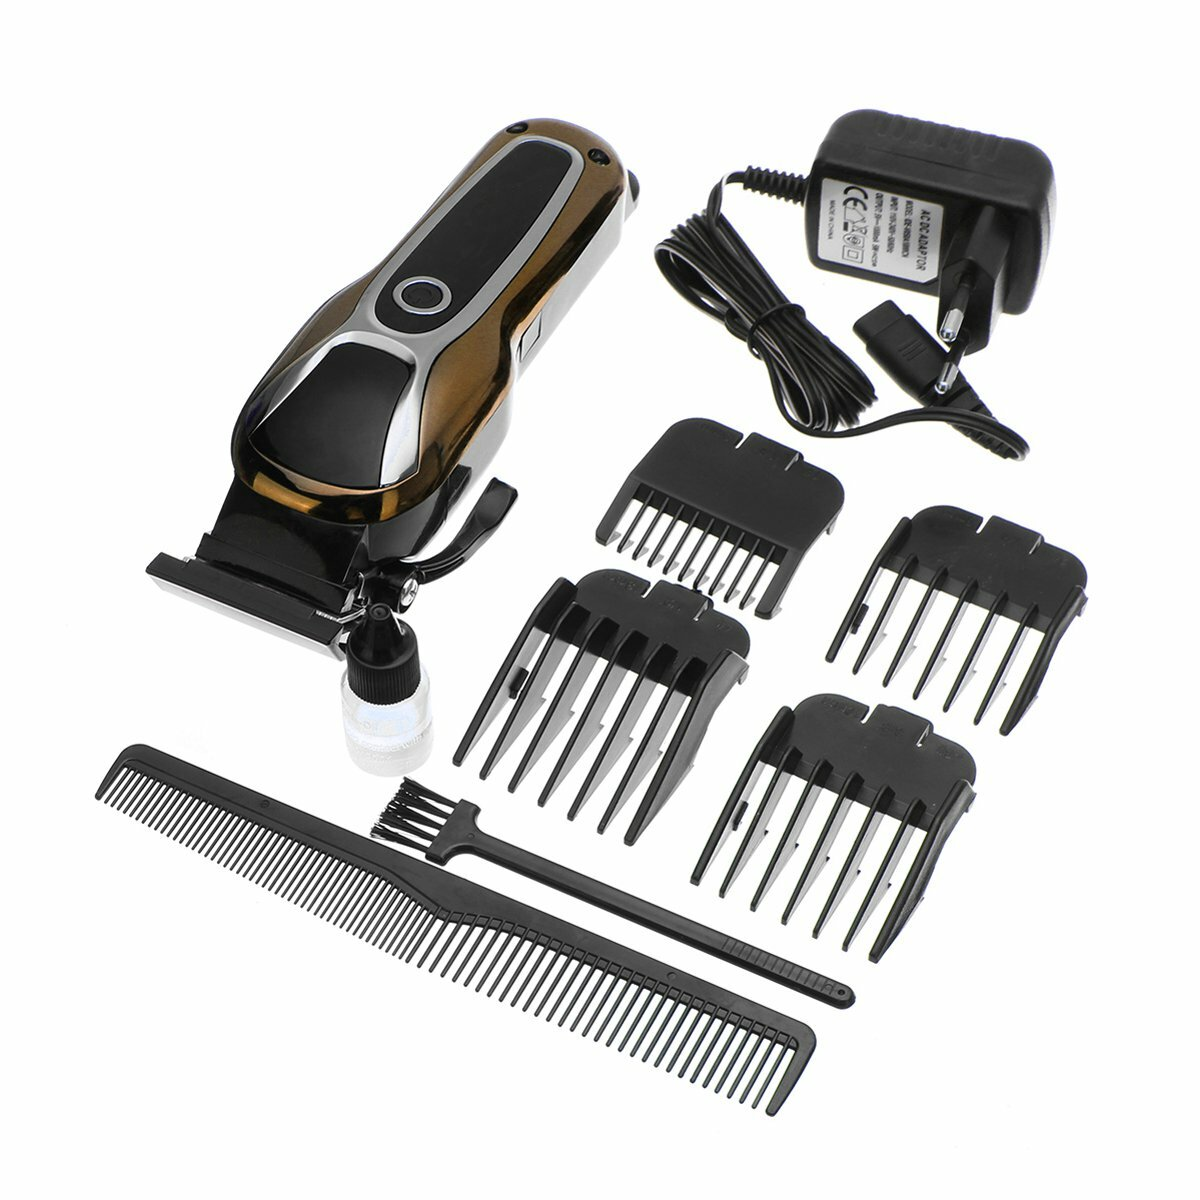 USB T9 Carving Push White Small Fader Oil Head Electric Clipper Rechargeable Electric Hair Clipper - 2